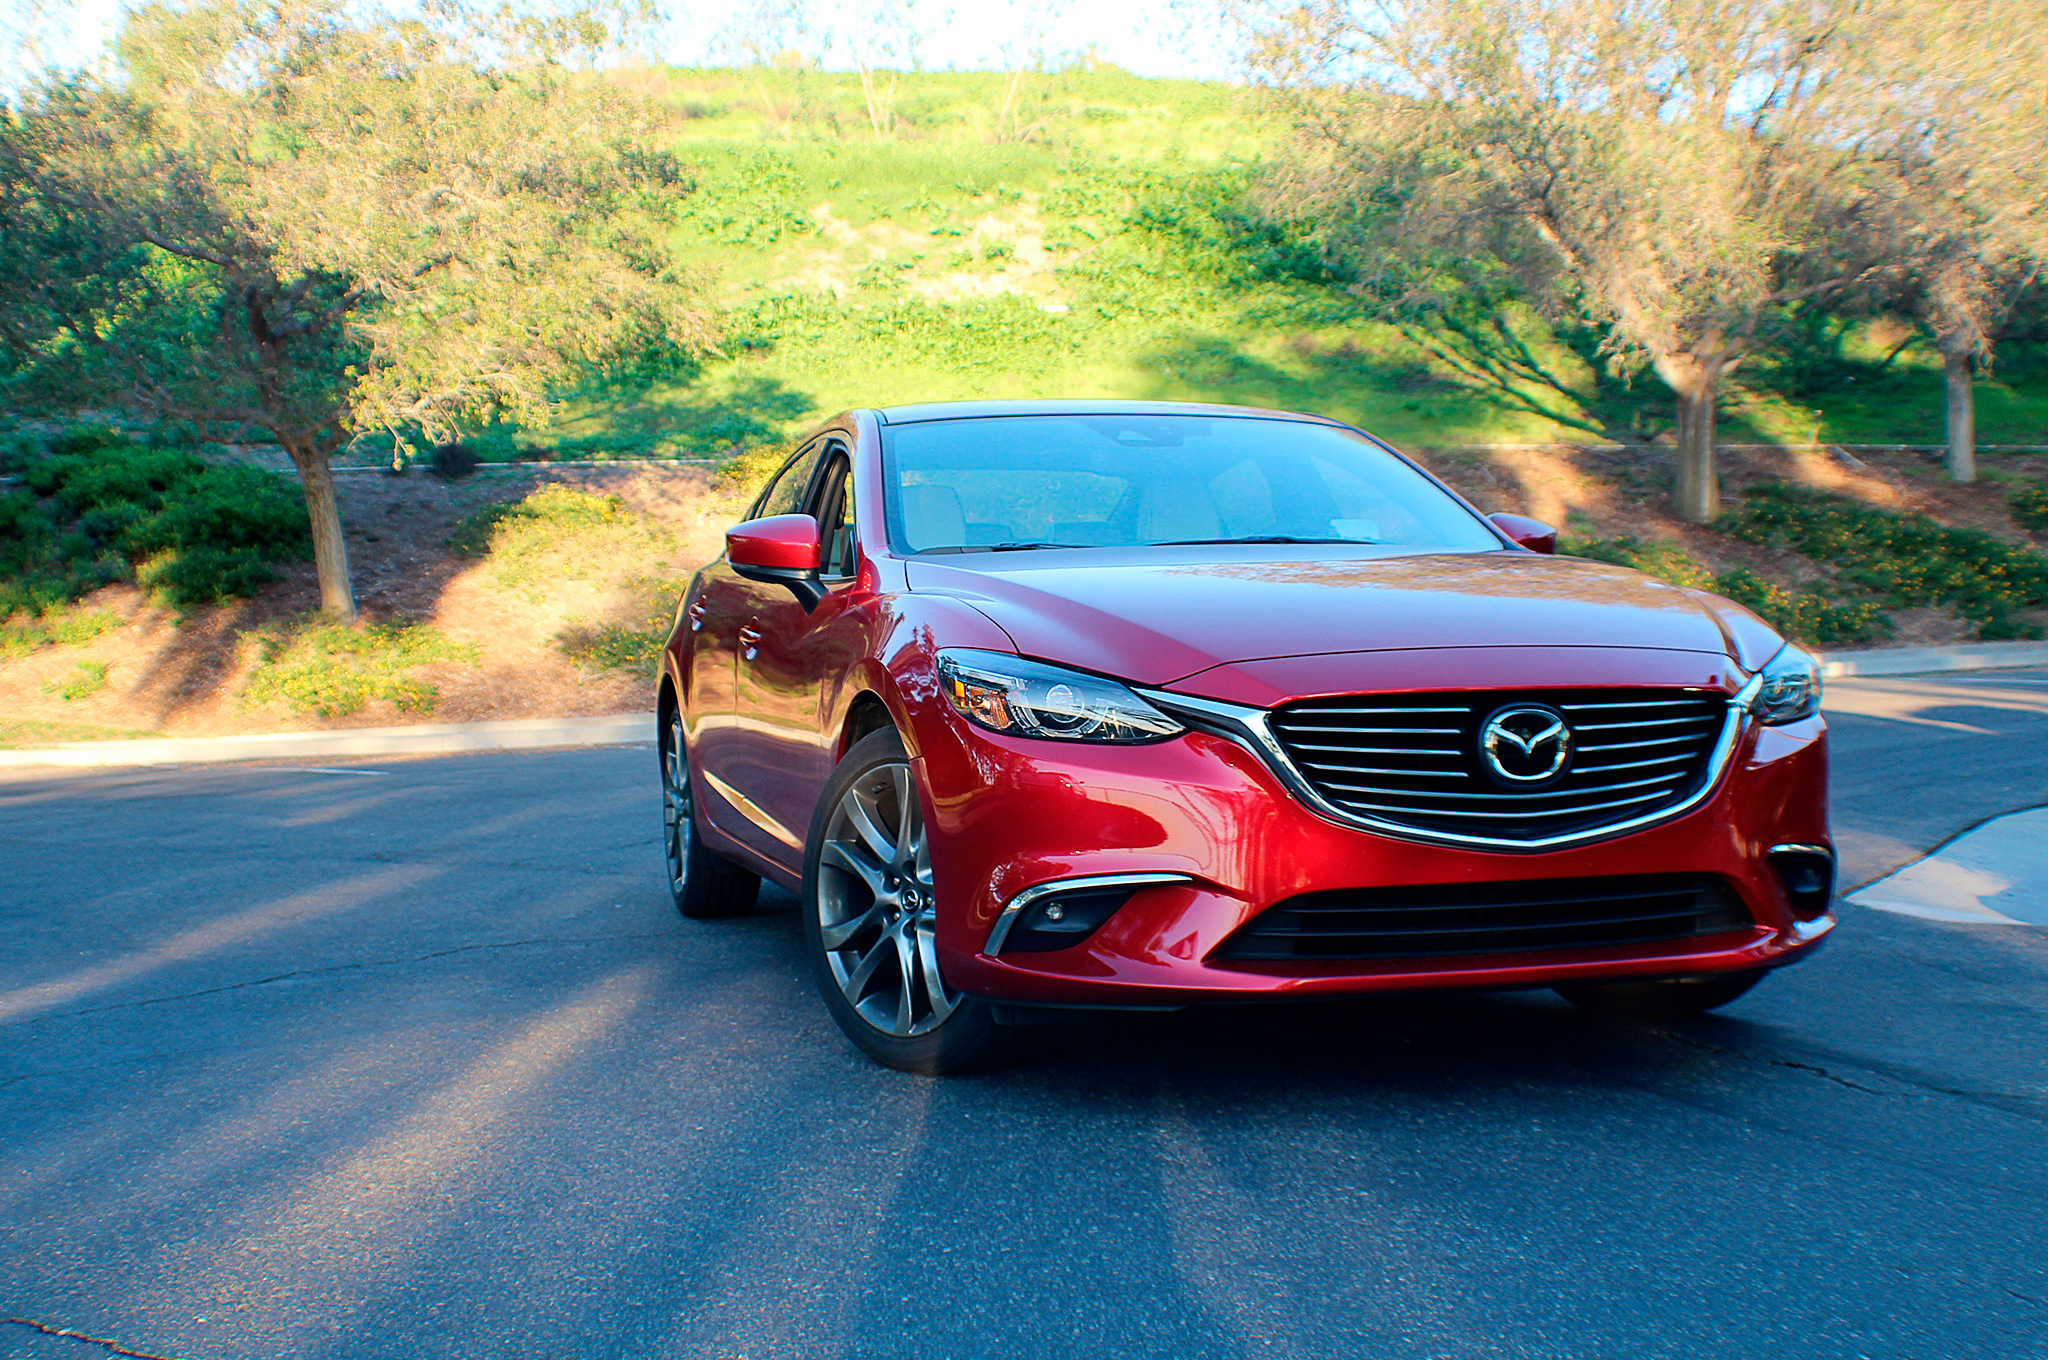 mazda6 recalled over spider scare chrysler minivans and honda civic hybrid also up for fixes. Black Bedroom Furniture Sets. Home Design Ideas